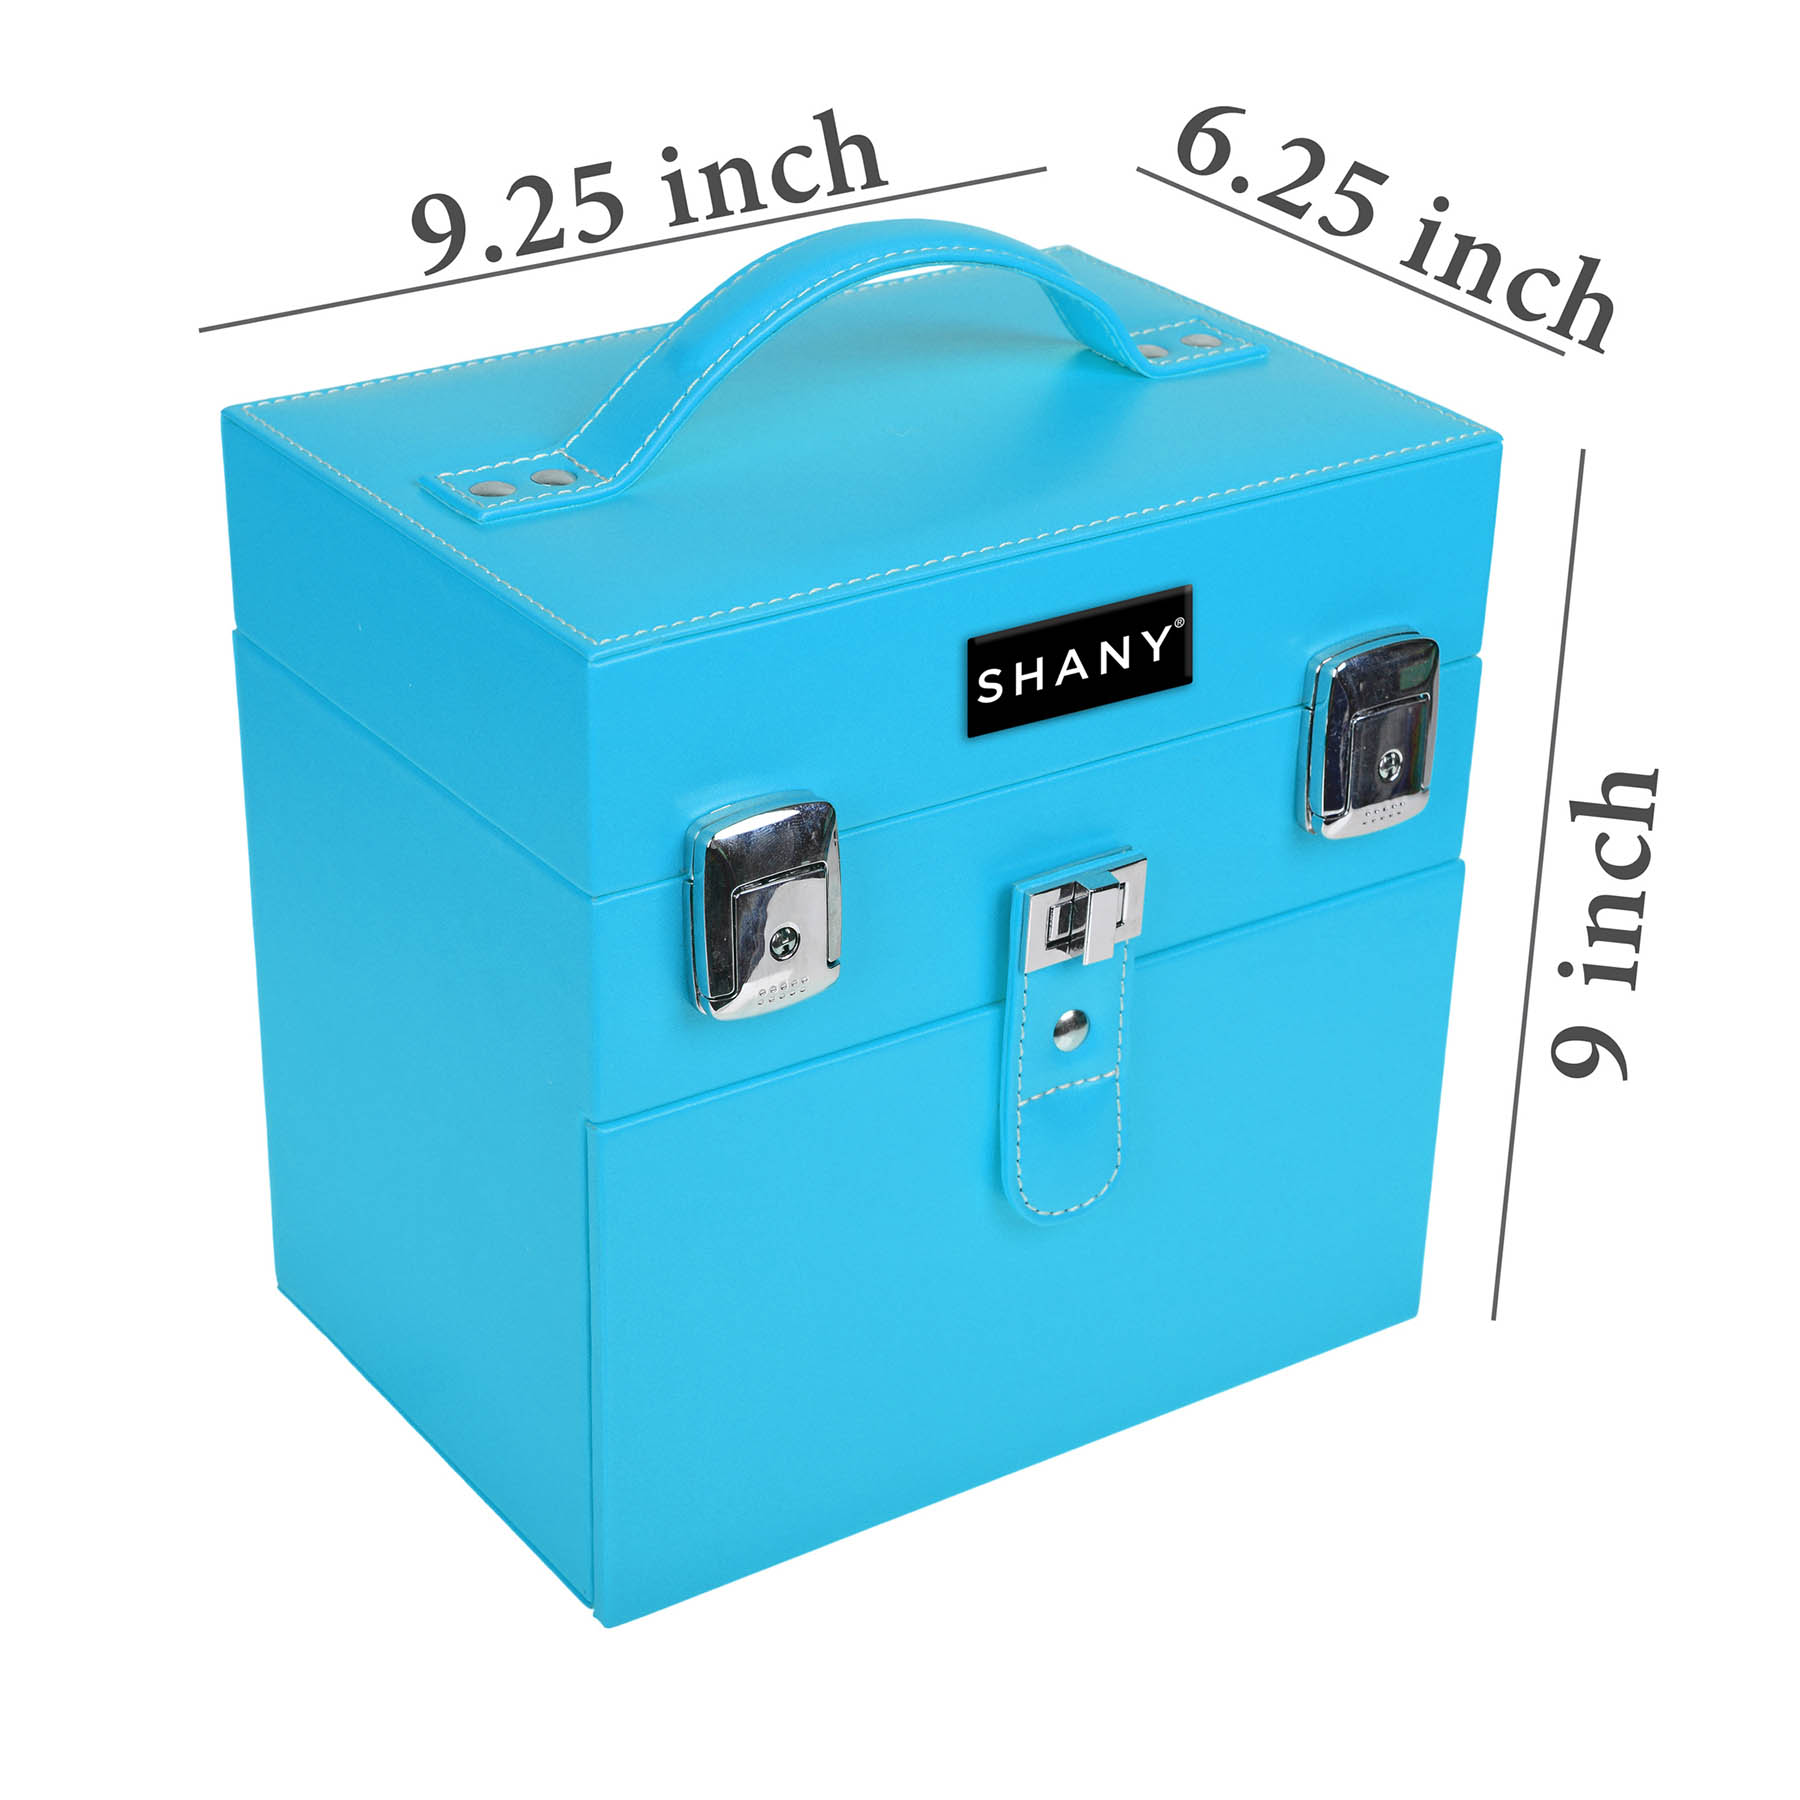 SHANY-Color-Matters-Nail-Accessories-Organizer-and-Makeup-Train-Case miniature 65